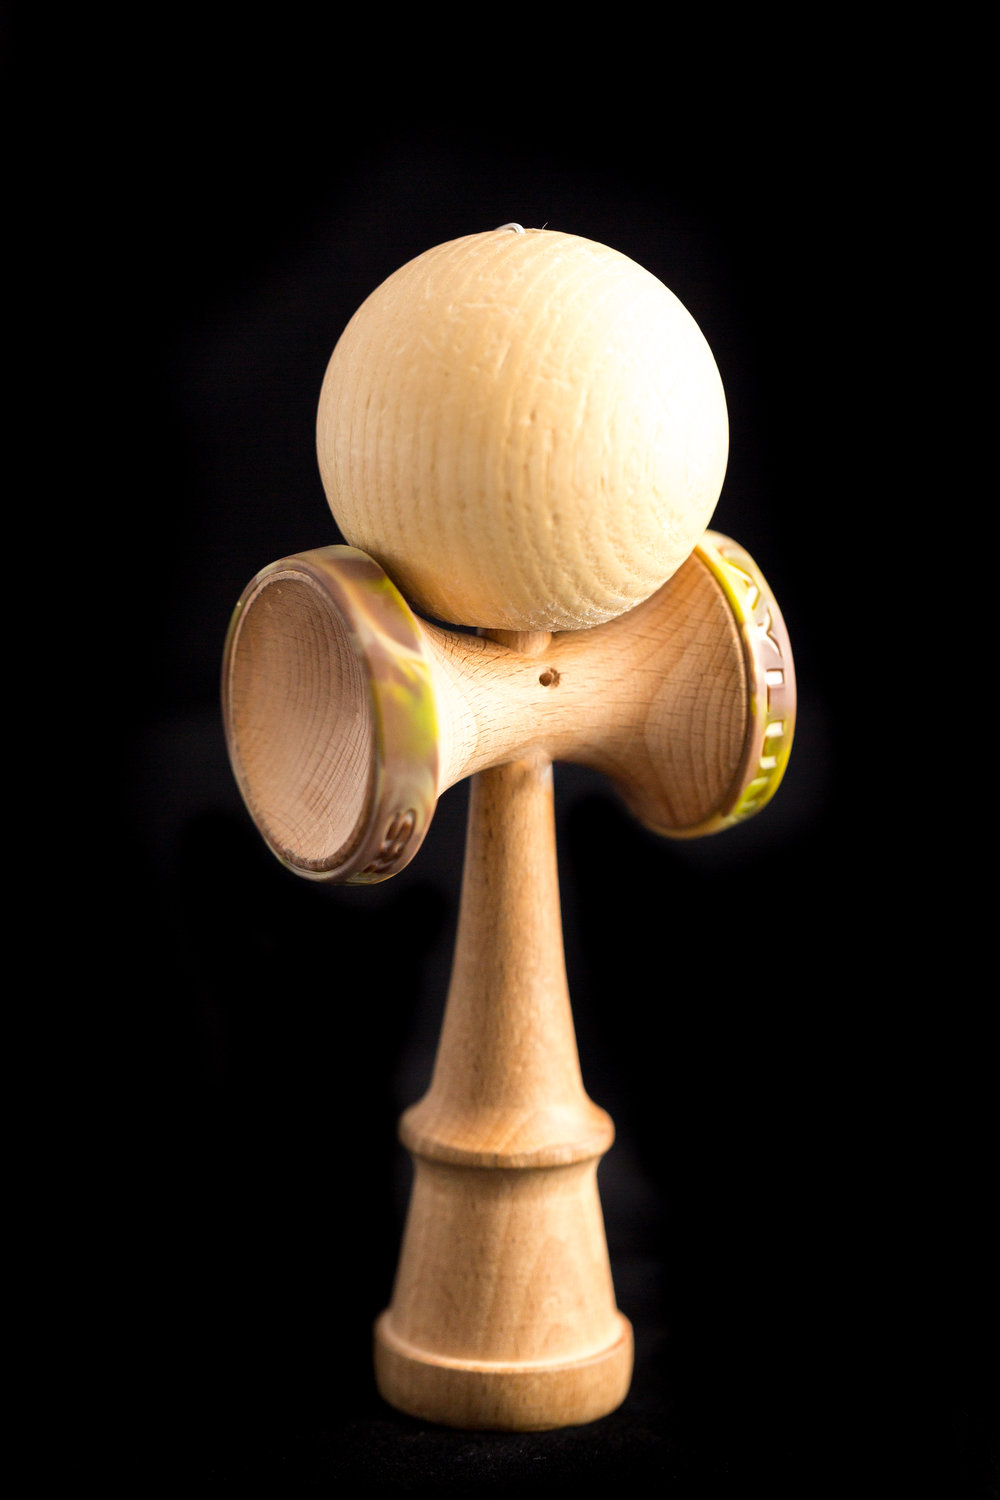 kendama-accessories-slaybands-v3-lunar-balance-15.jpg